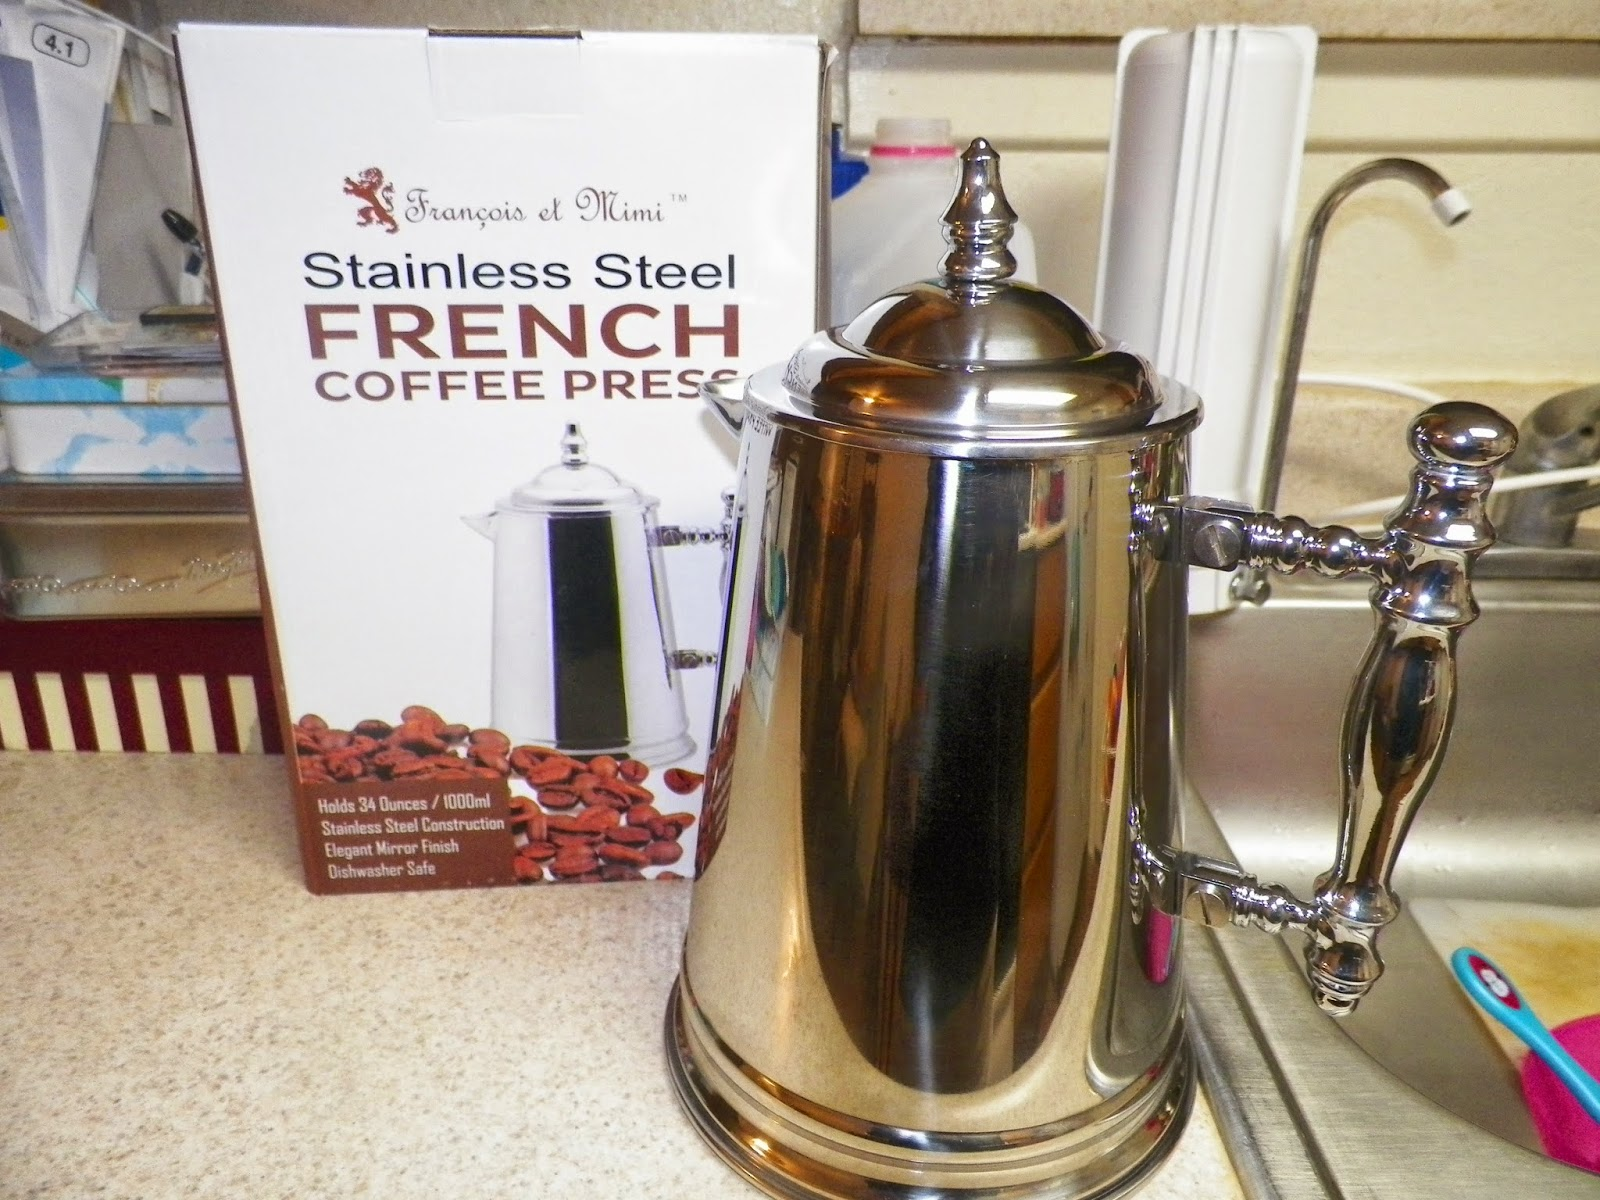 Francois_Et_Mimi_Stainless_Steel_French_Coffee_Press.jpg